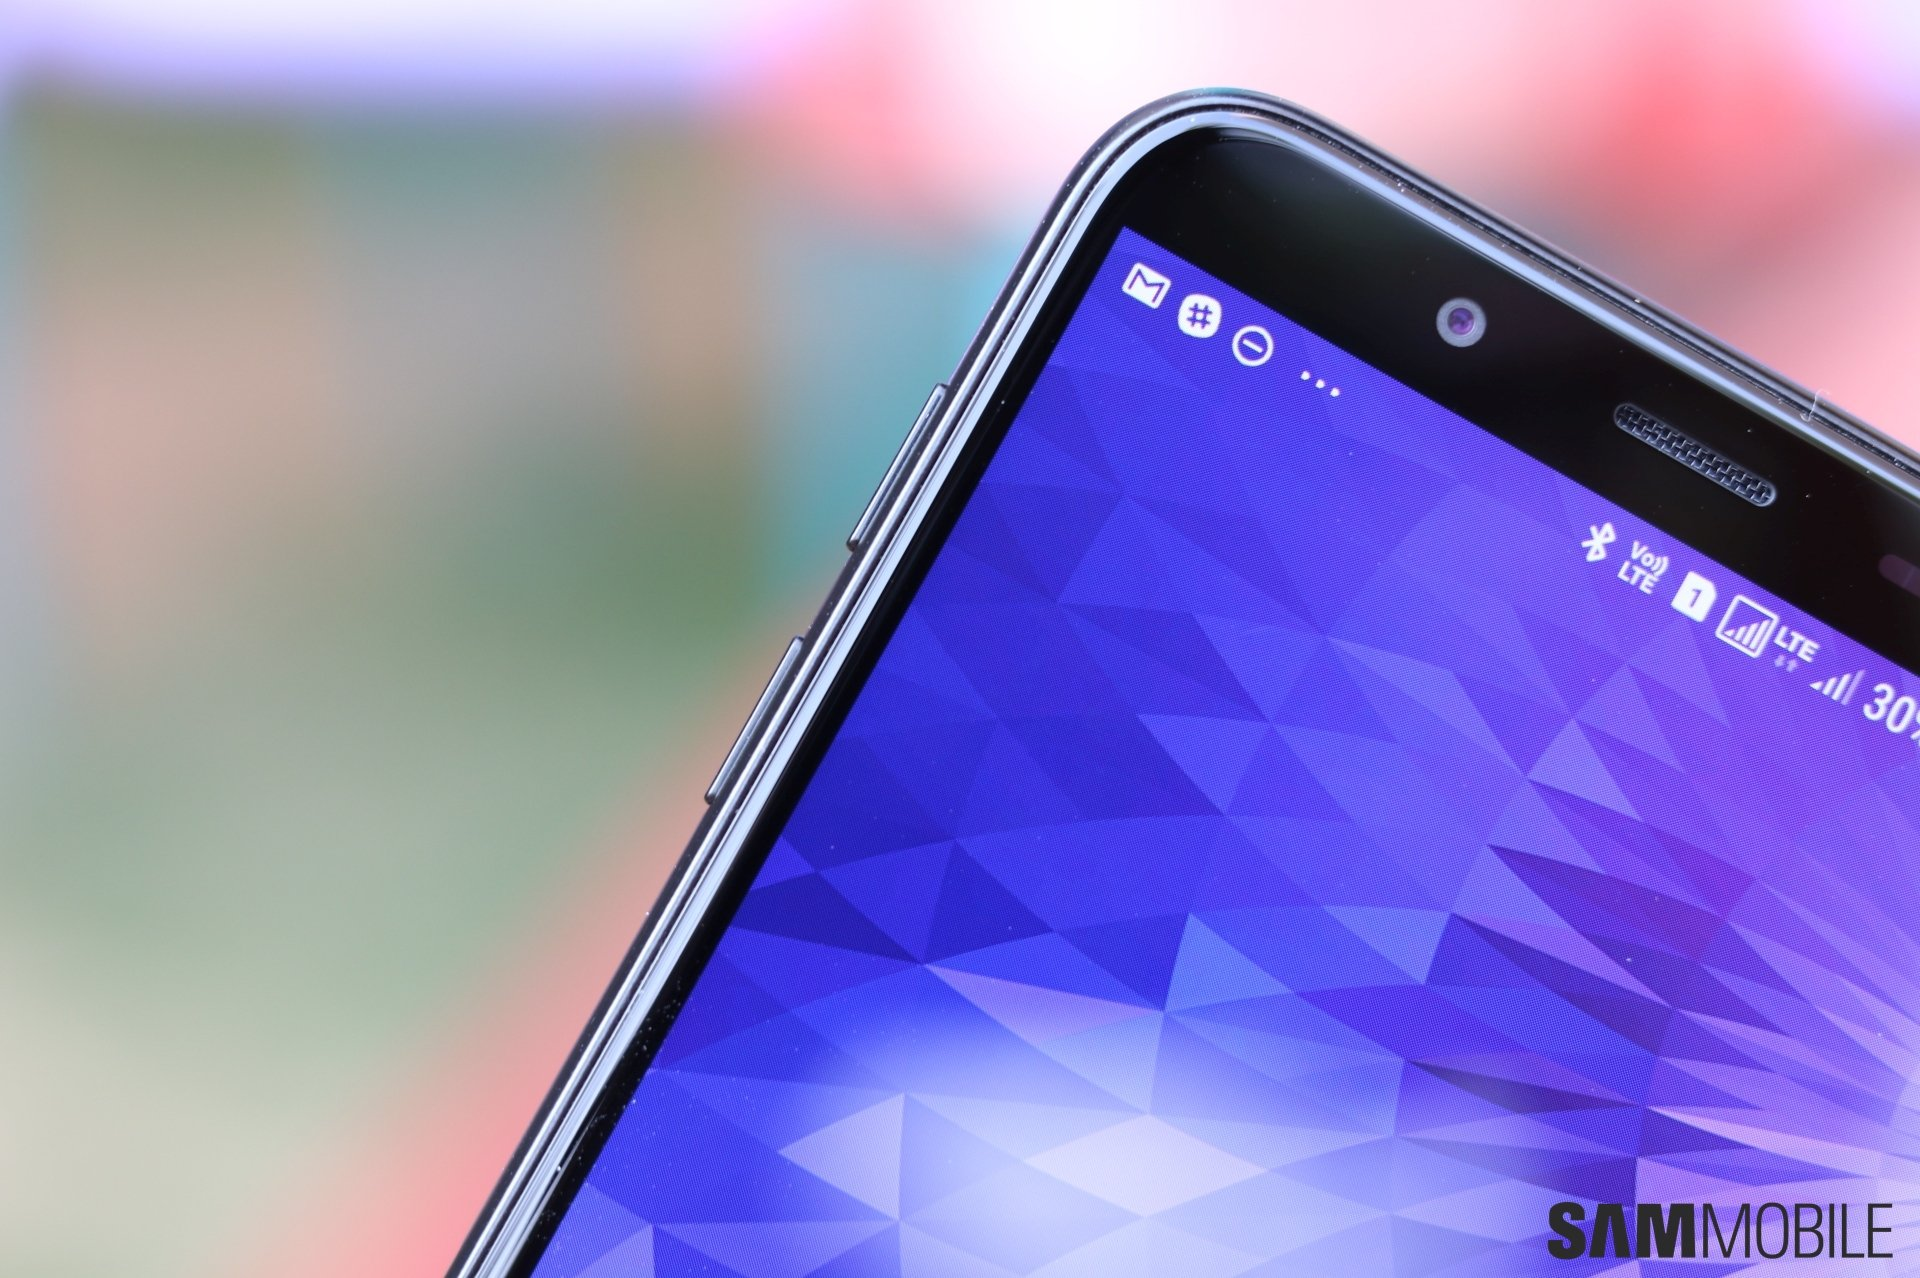 Samsung may be working on a Snapdragon 450-powered Galaxy J6 Plus